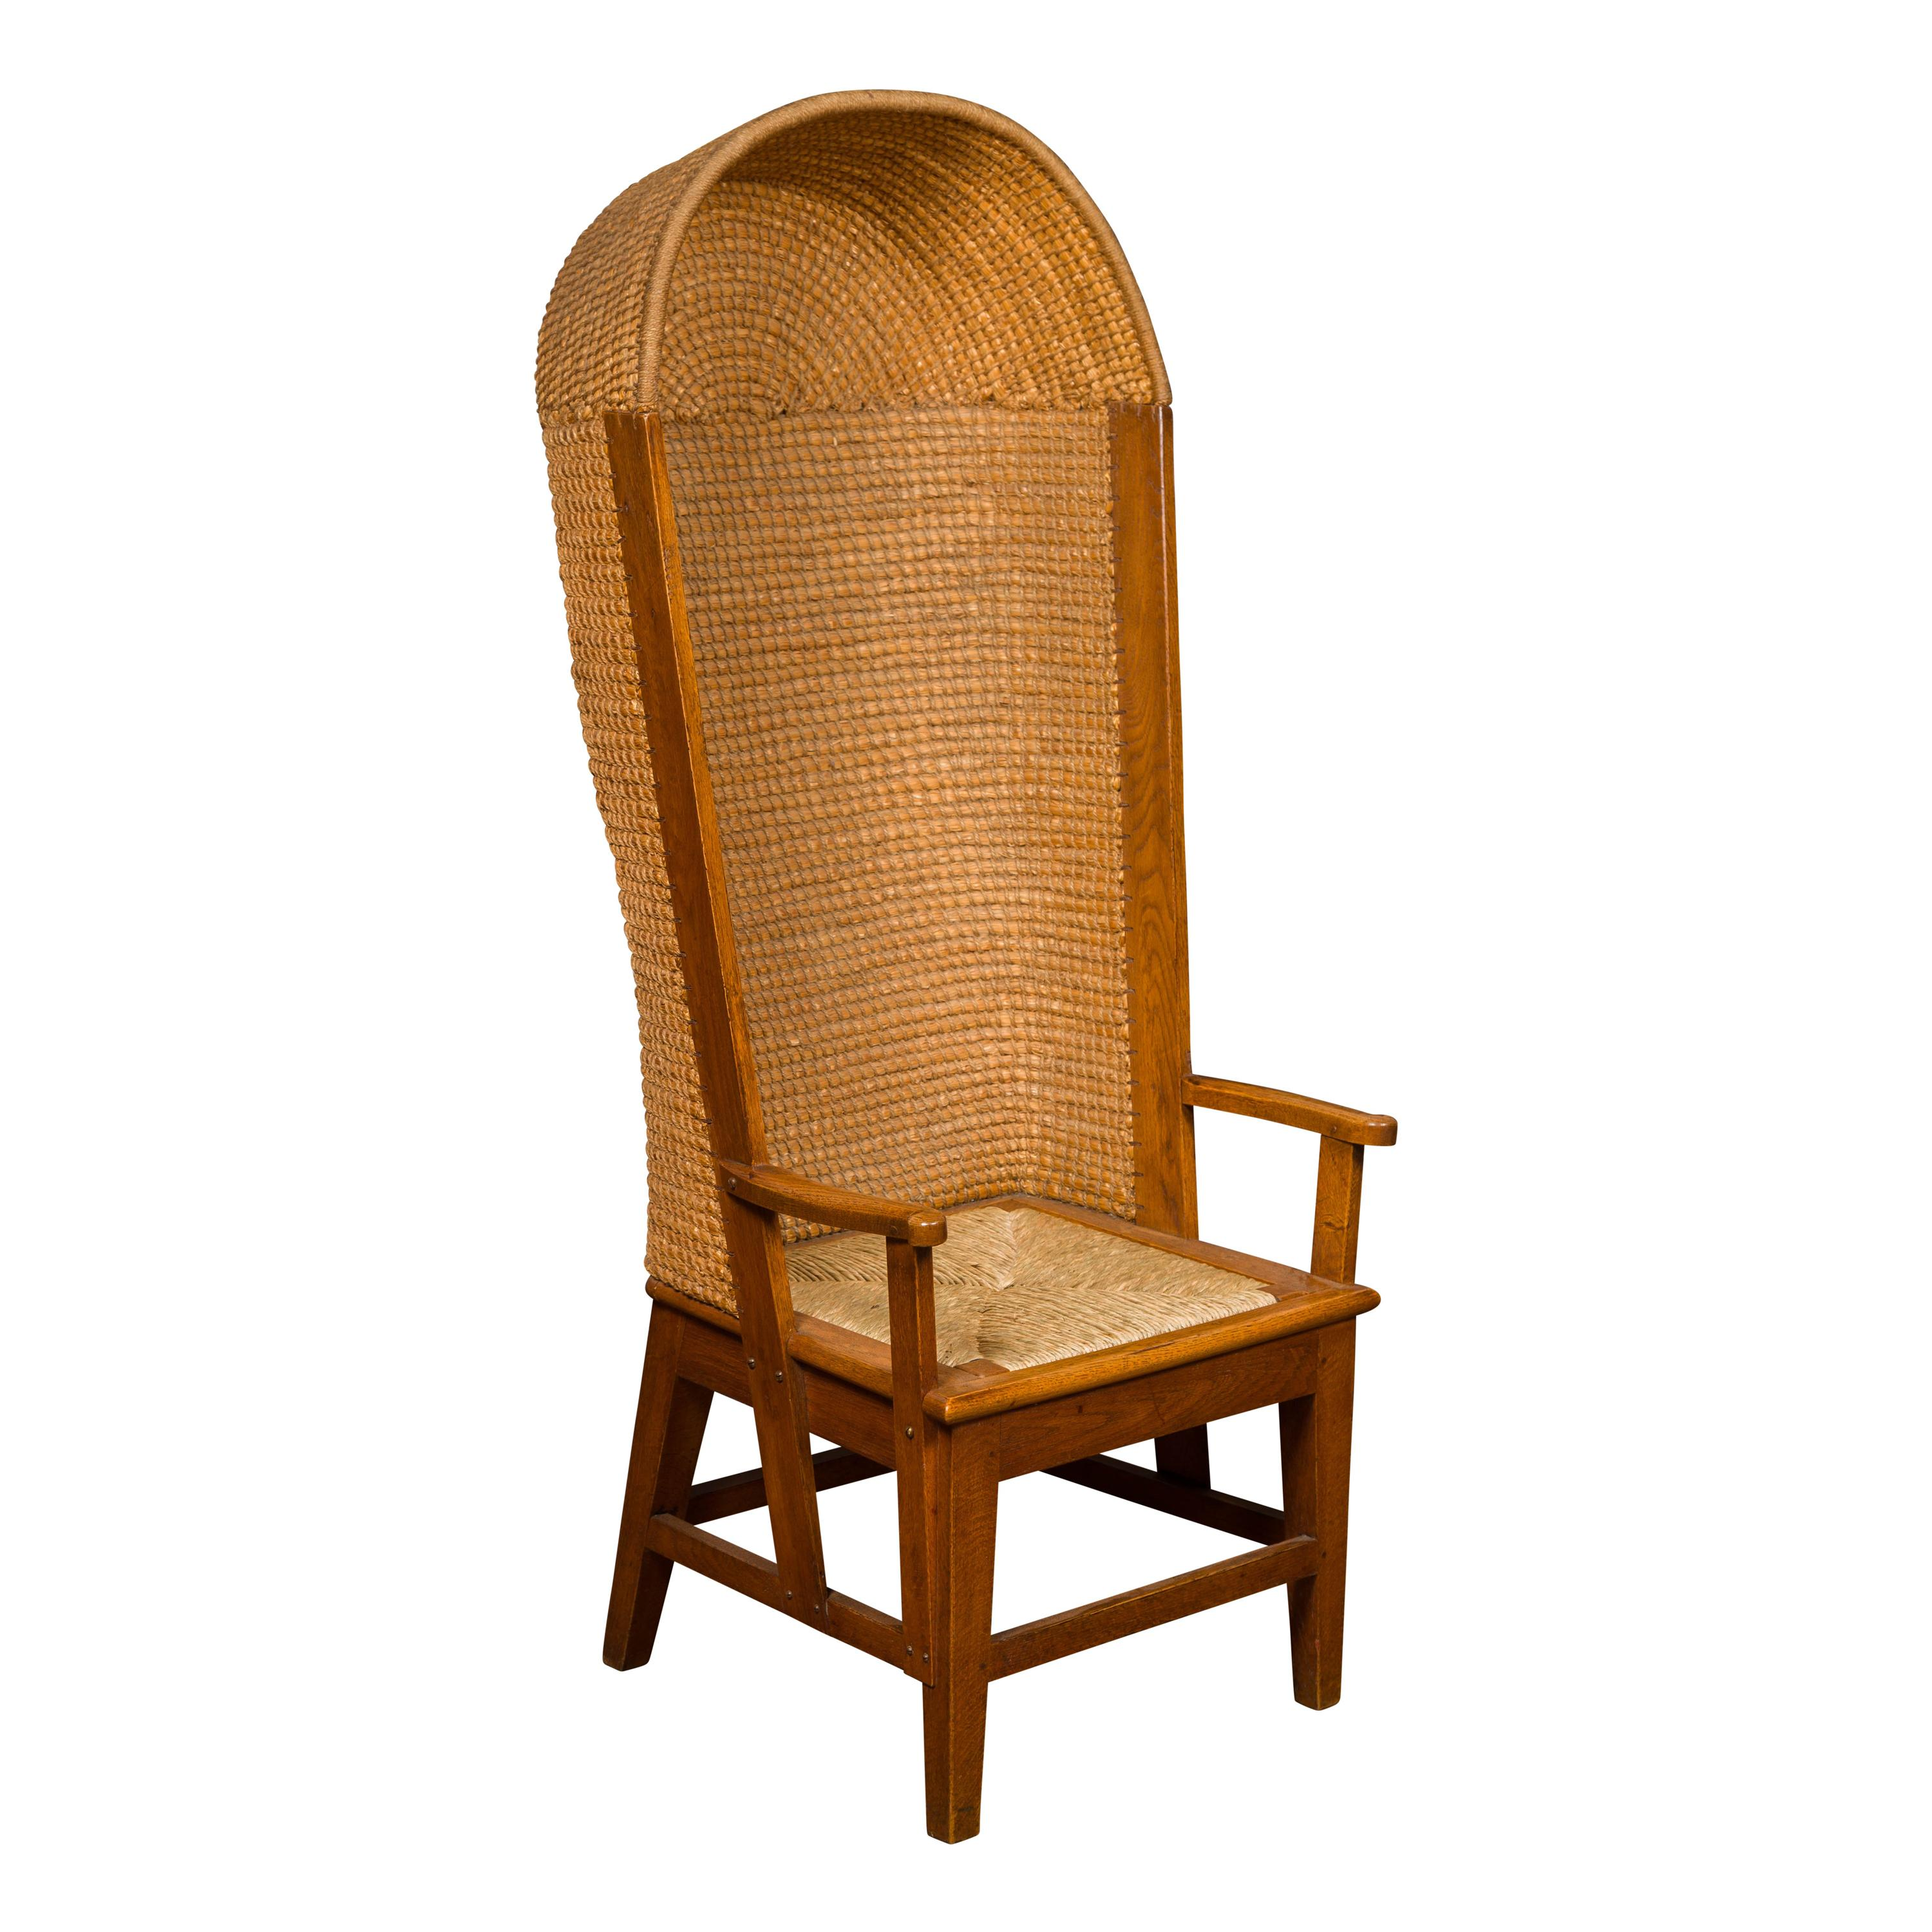 Scottish 1900s Orkney Island Canopy Chair with Hooded Handwoven Straw Back